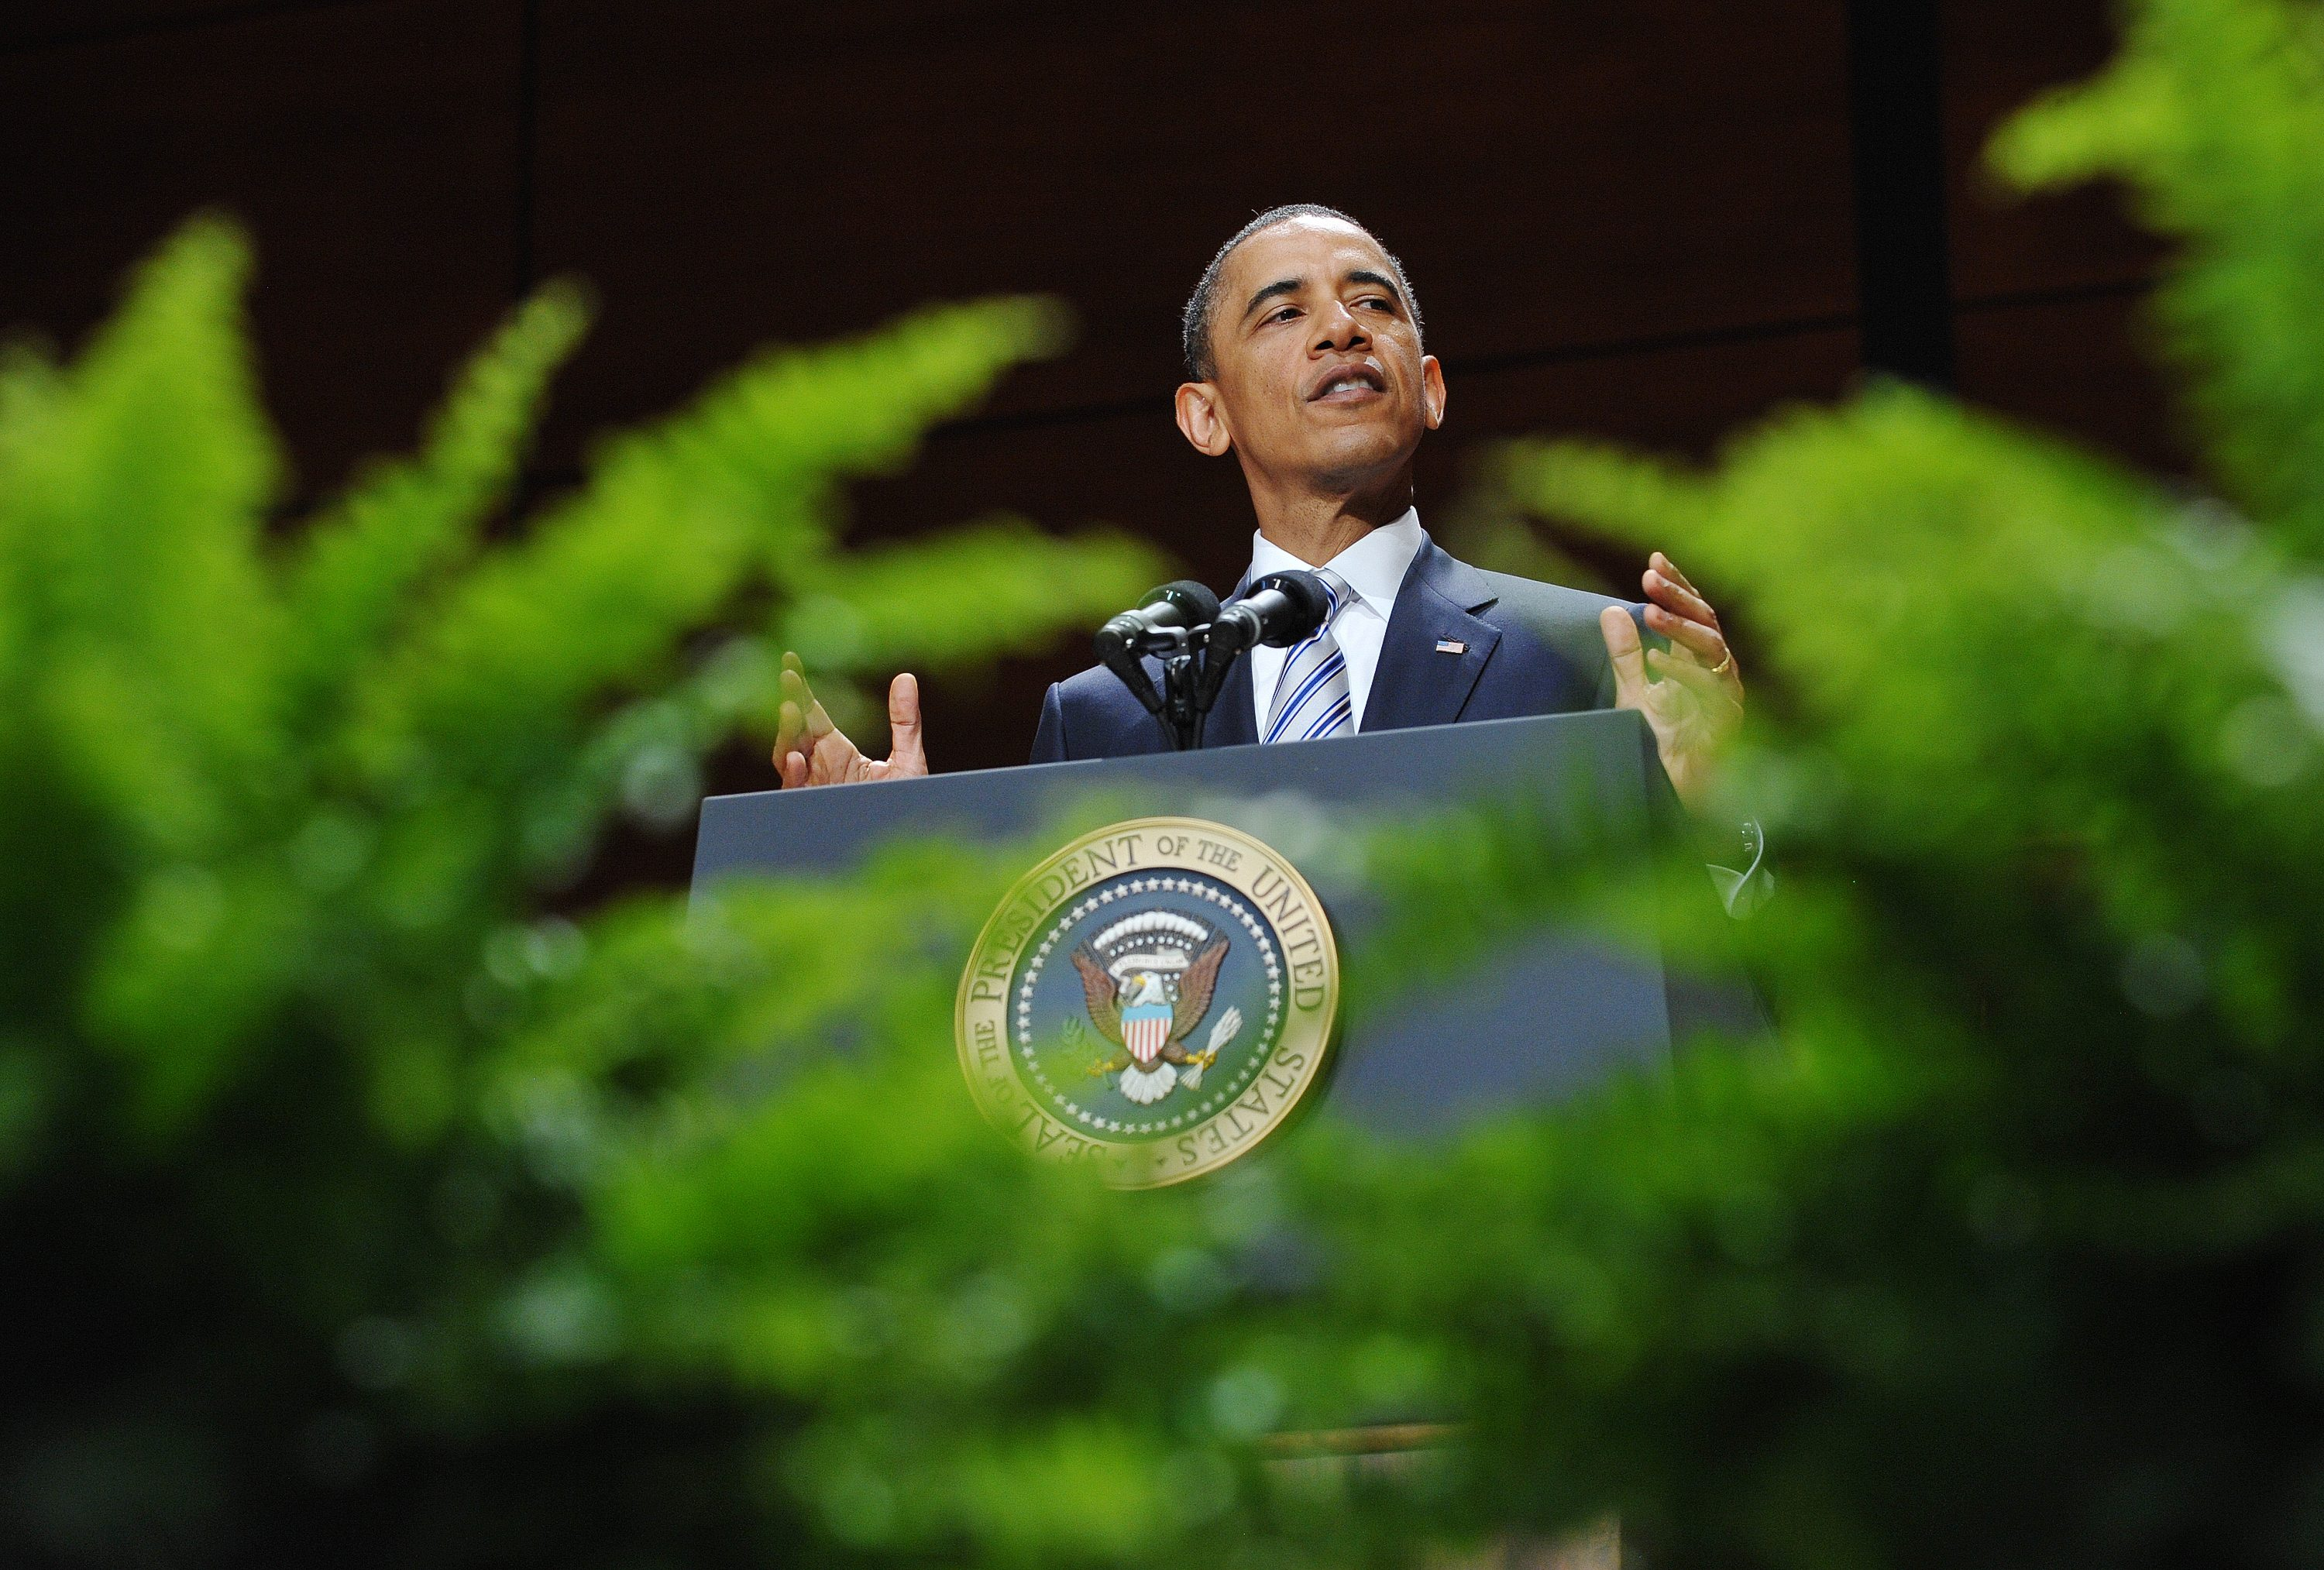 President Barack Obama delivers the commencement address on May 18, 2011 at the United States Coast Guard Academy in New London, Connecticut.